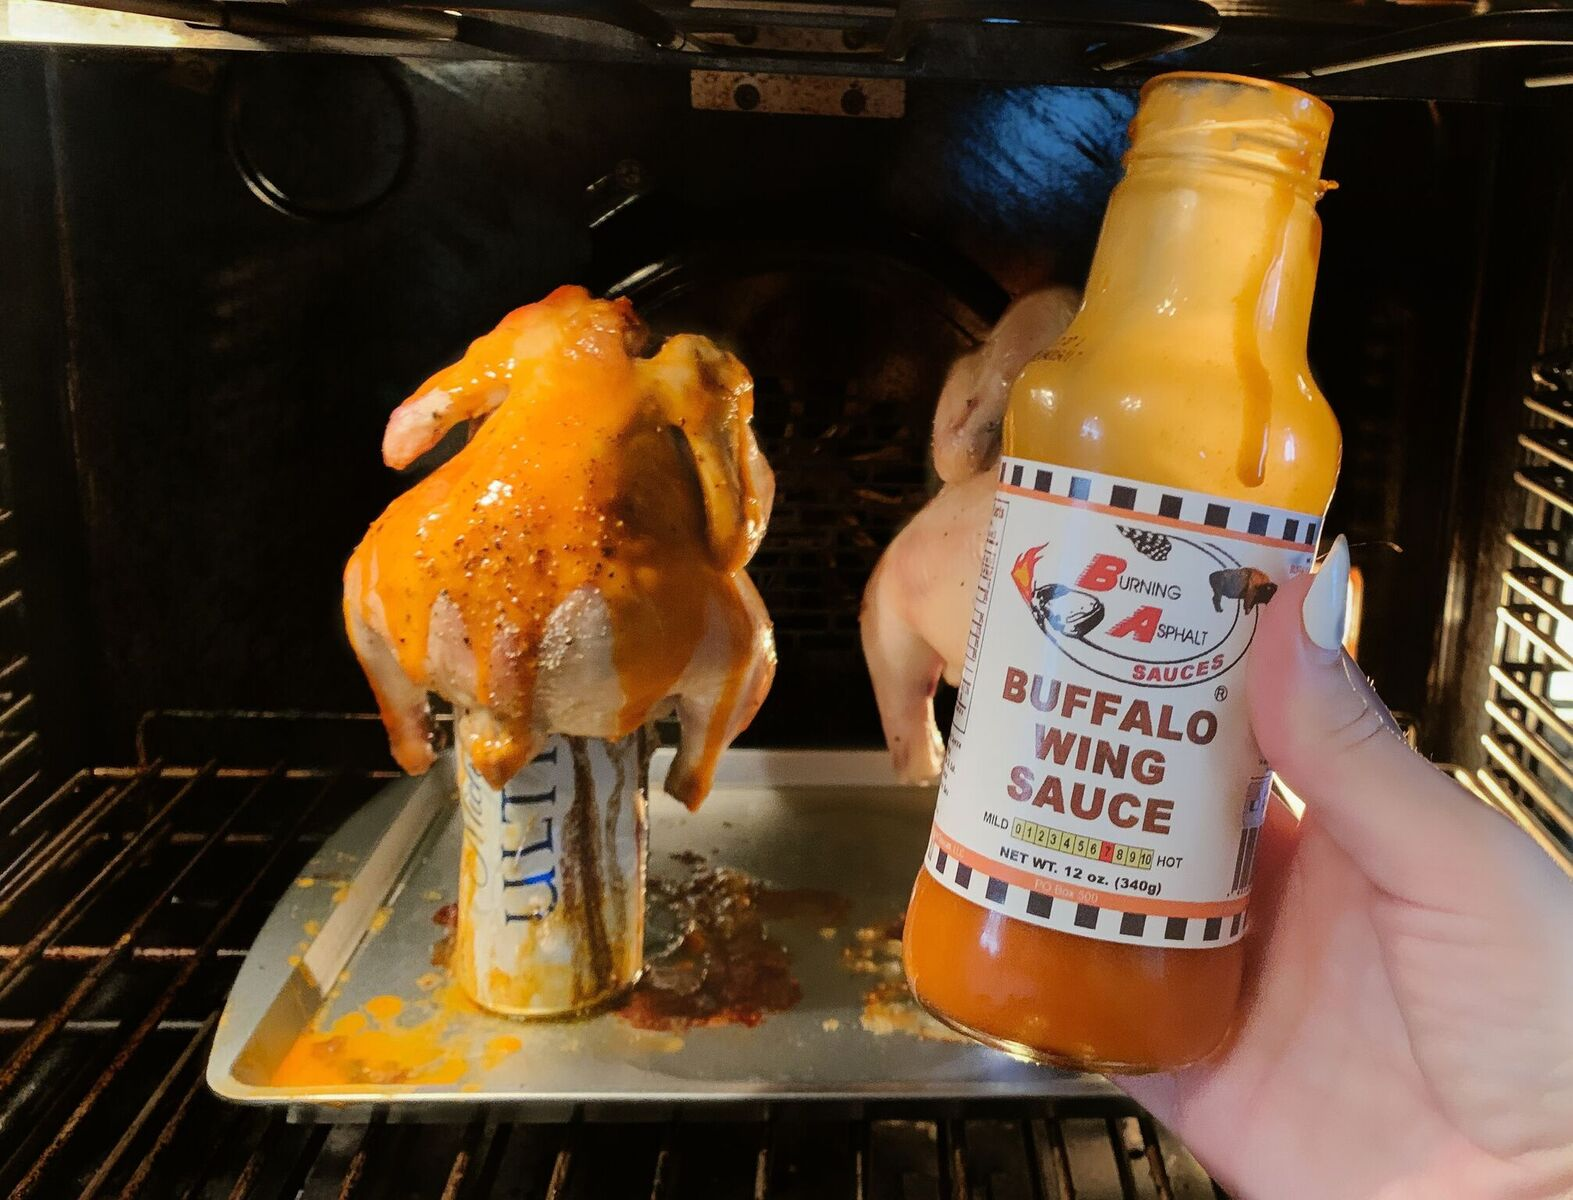 Not only are these Buffalo Beer Can Cornish Hens easy to make, but they are so flavorful, tender and juicy. If you're looking for an easy weeknight meal idea, this recipe should do quite nicely!